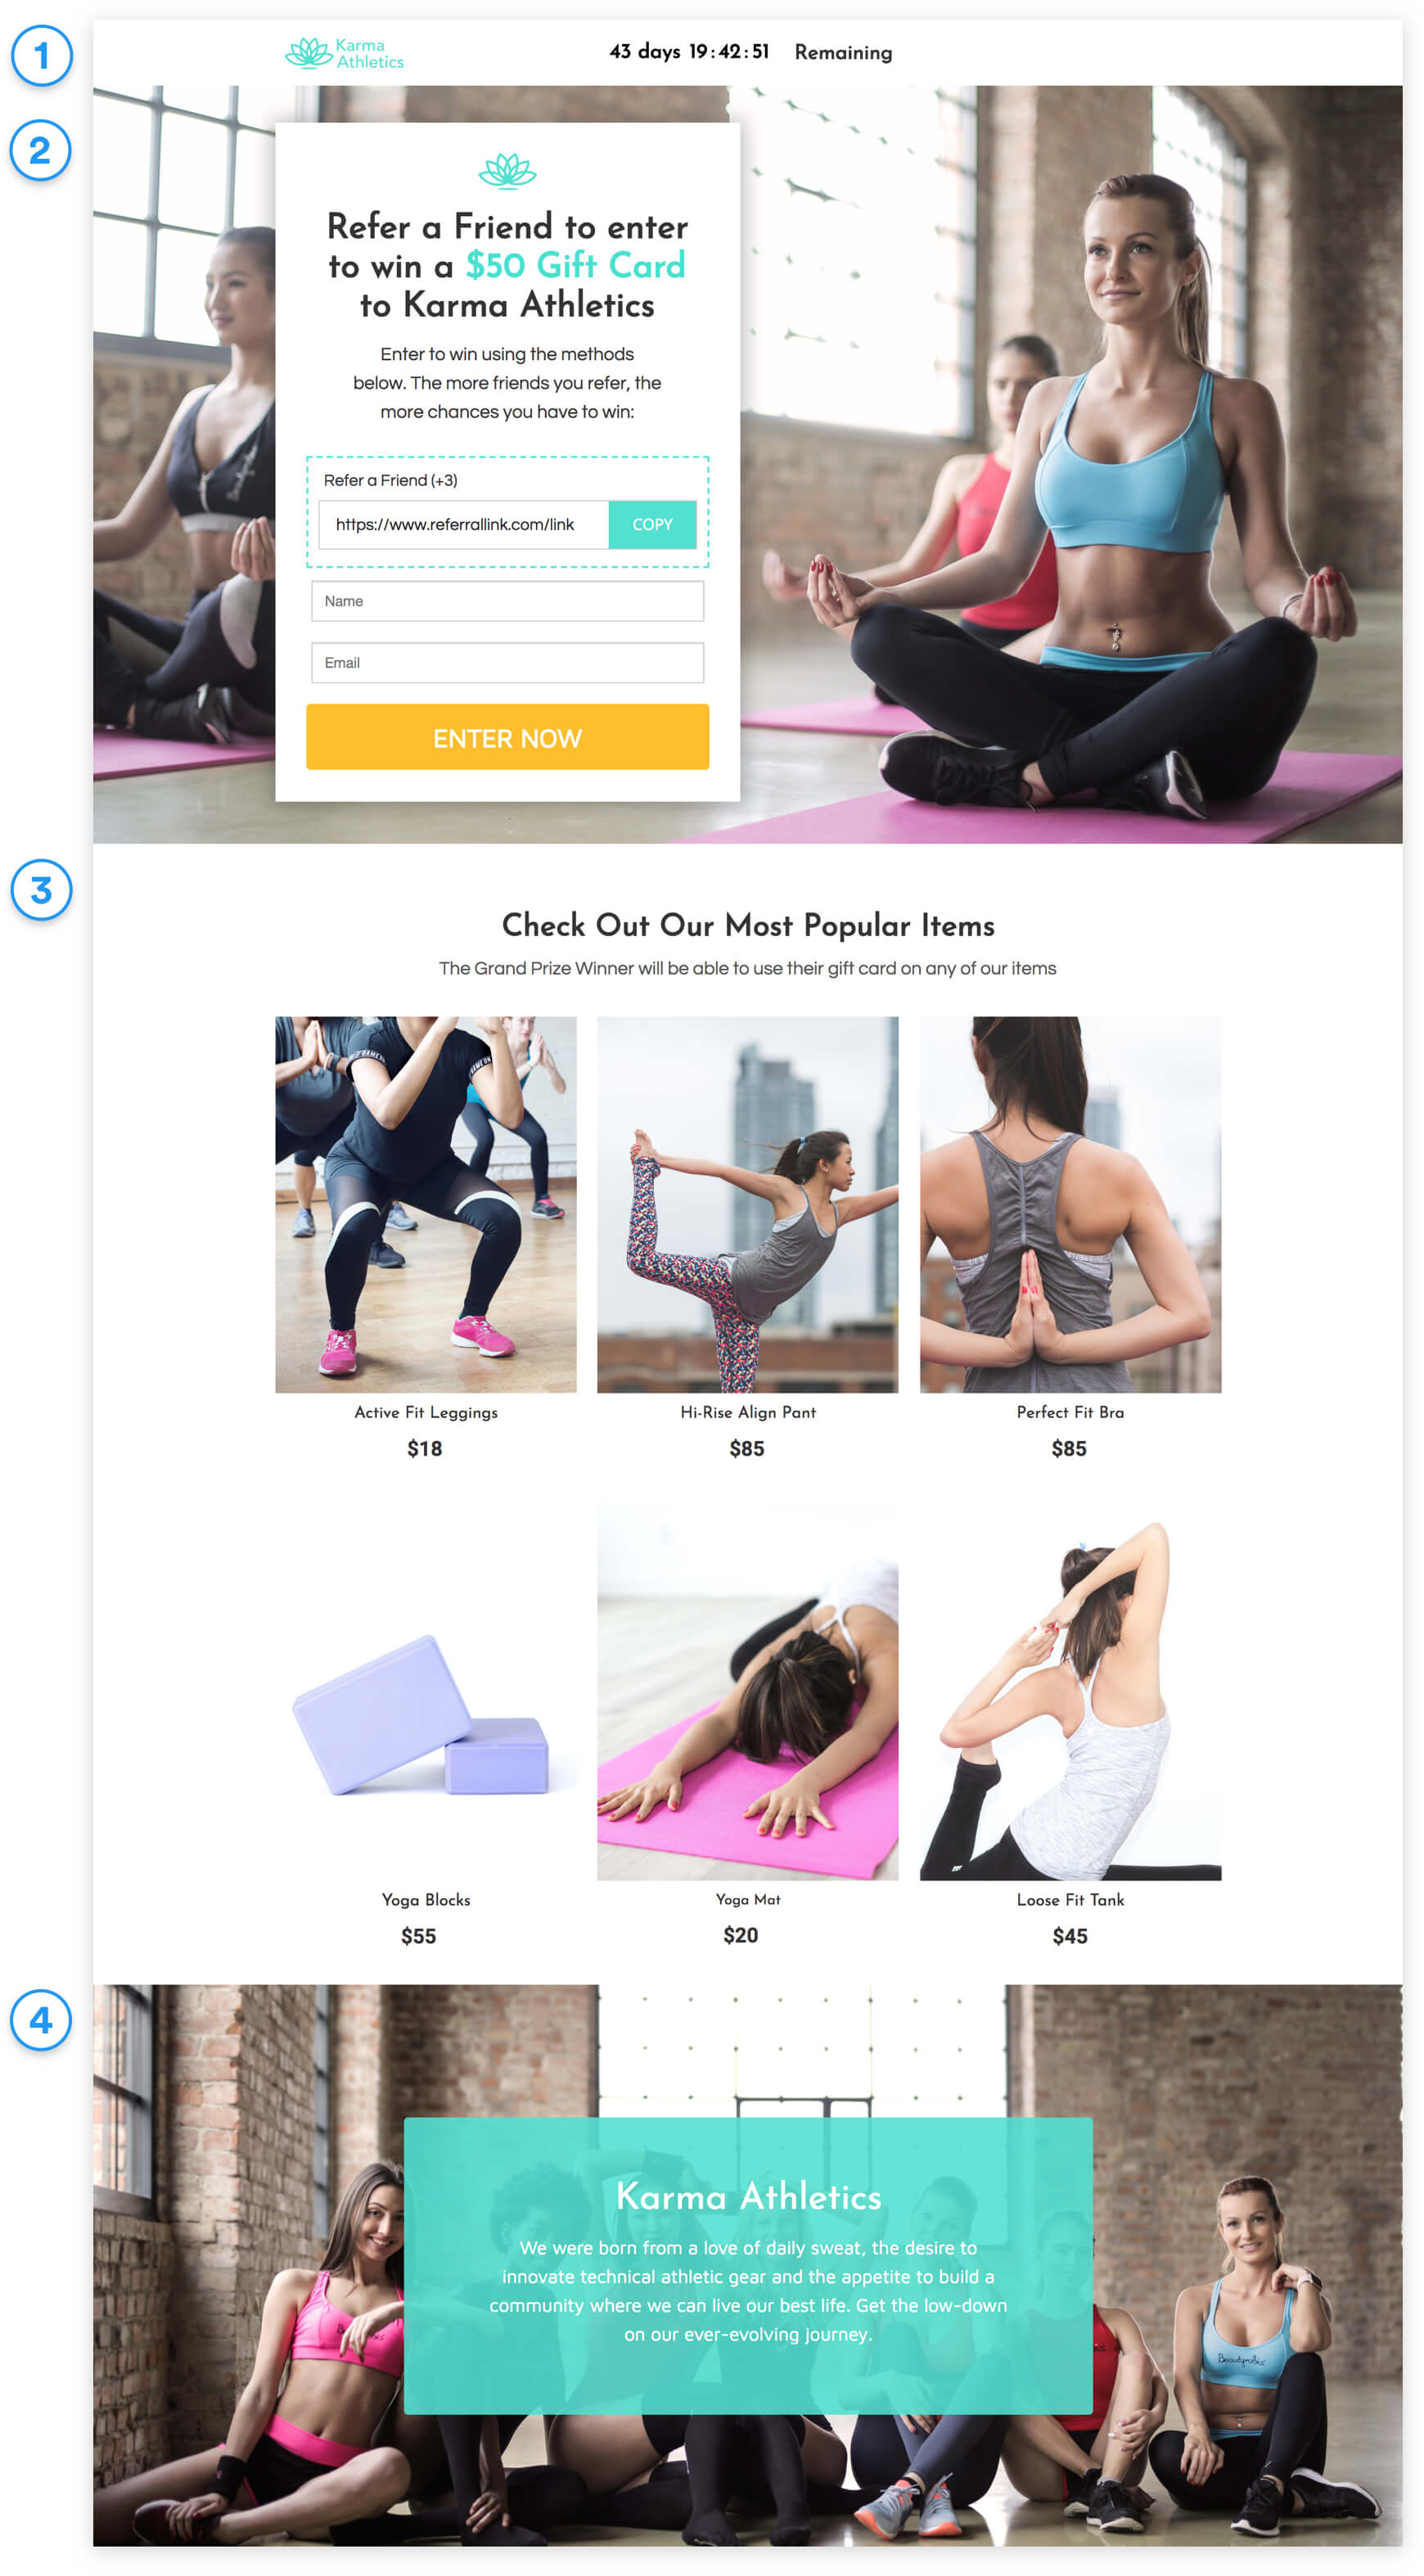 Ecommerce Refer-a-Friend Contest full template